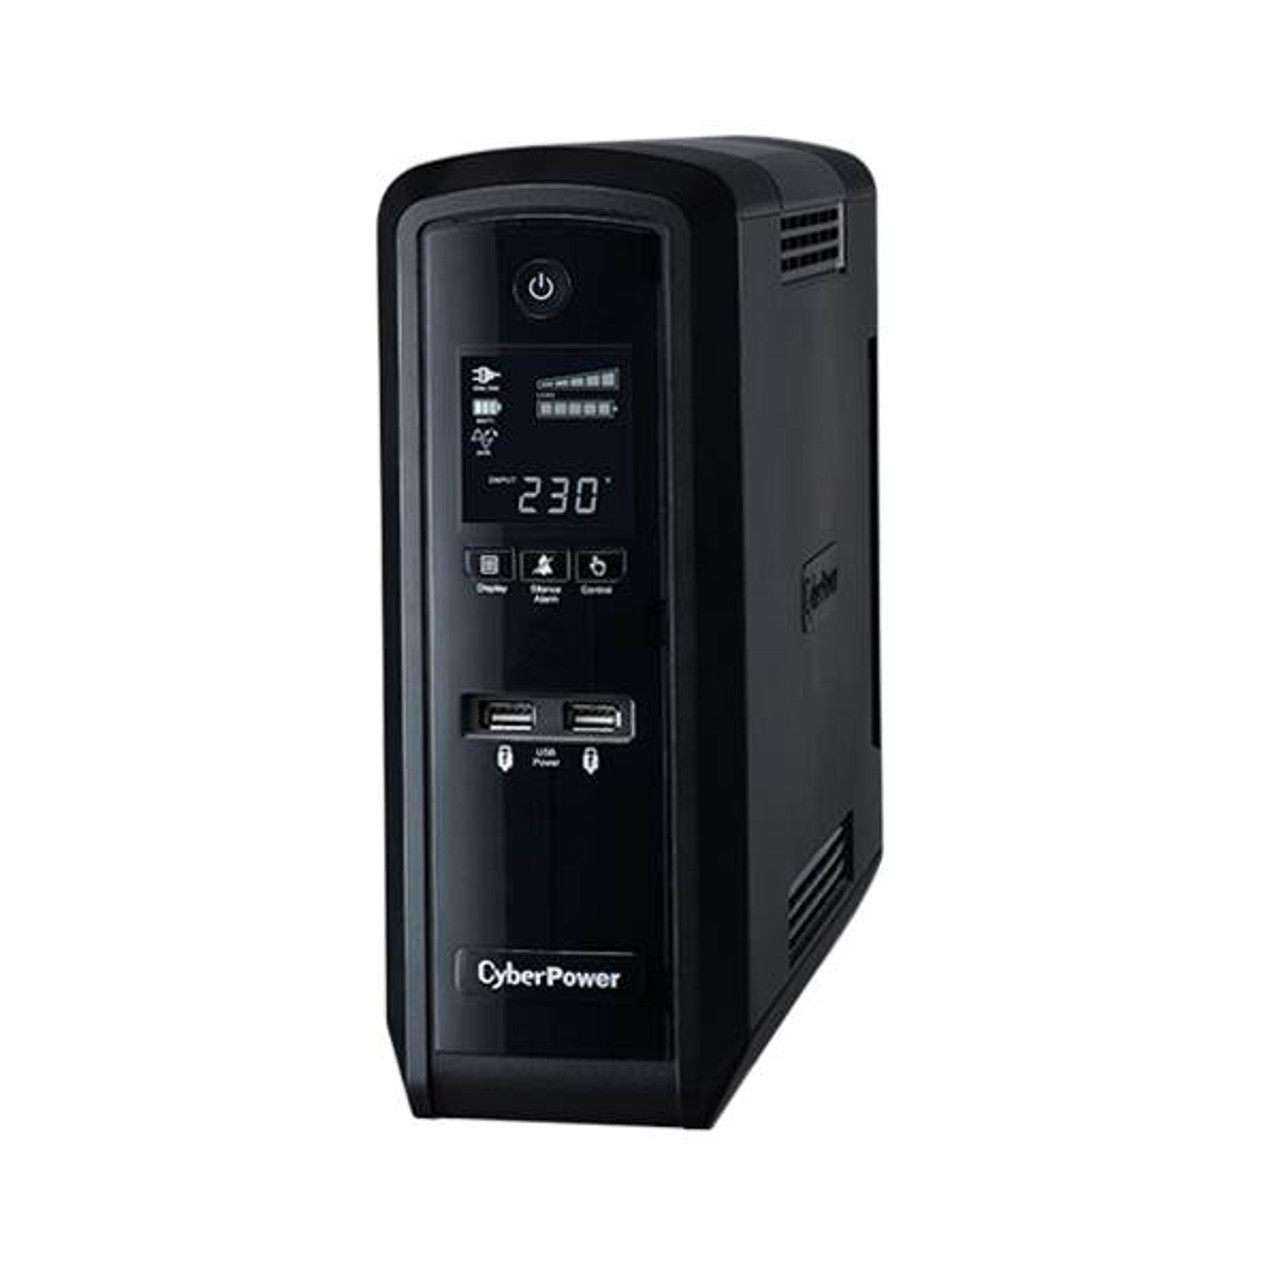 Image for CyberPower CP1300EPFCLCDa-AU PFC Sinewave 1300VA / 780W UPS Tower with LCD CX Computer Superstore